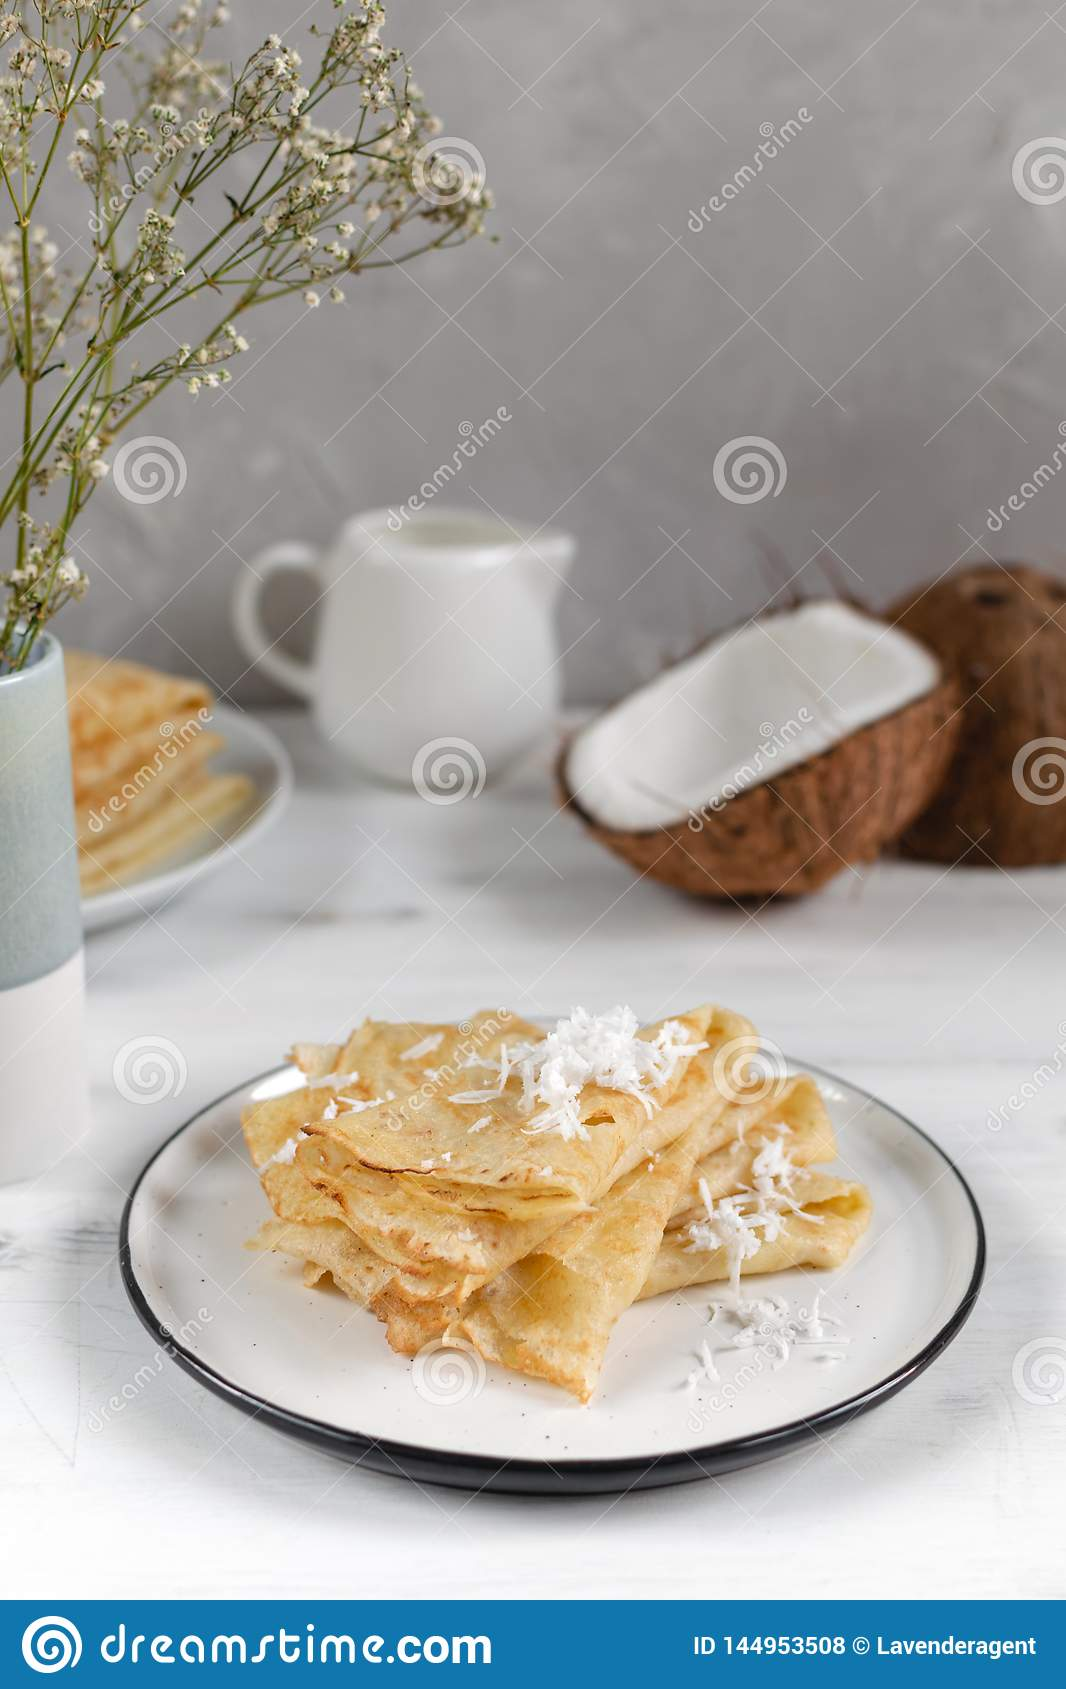 Morning, breakfast - traditional russian blini pancakes, french crepes, fresh coconut, milk bottle, white ceramic pitcher